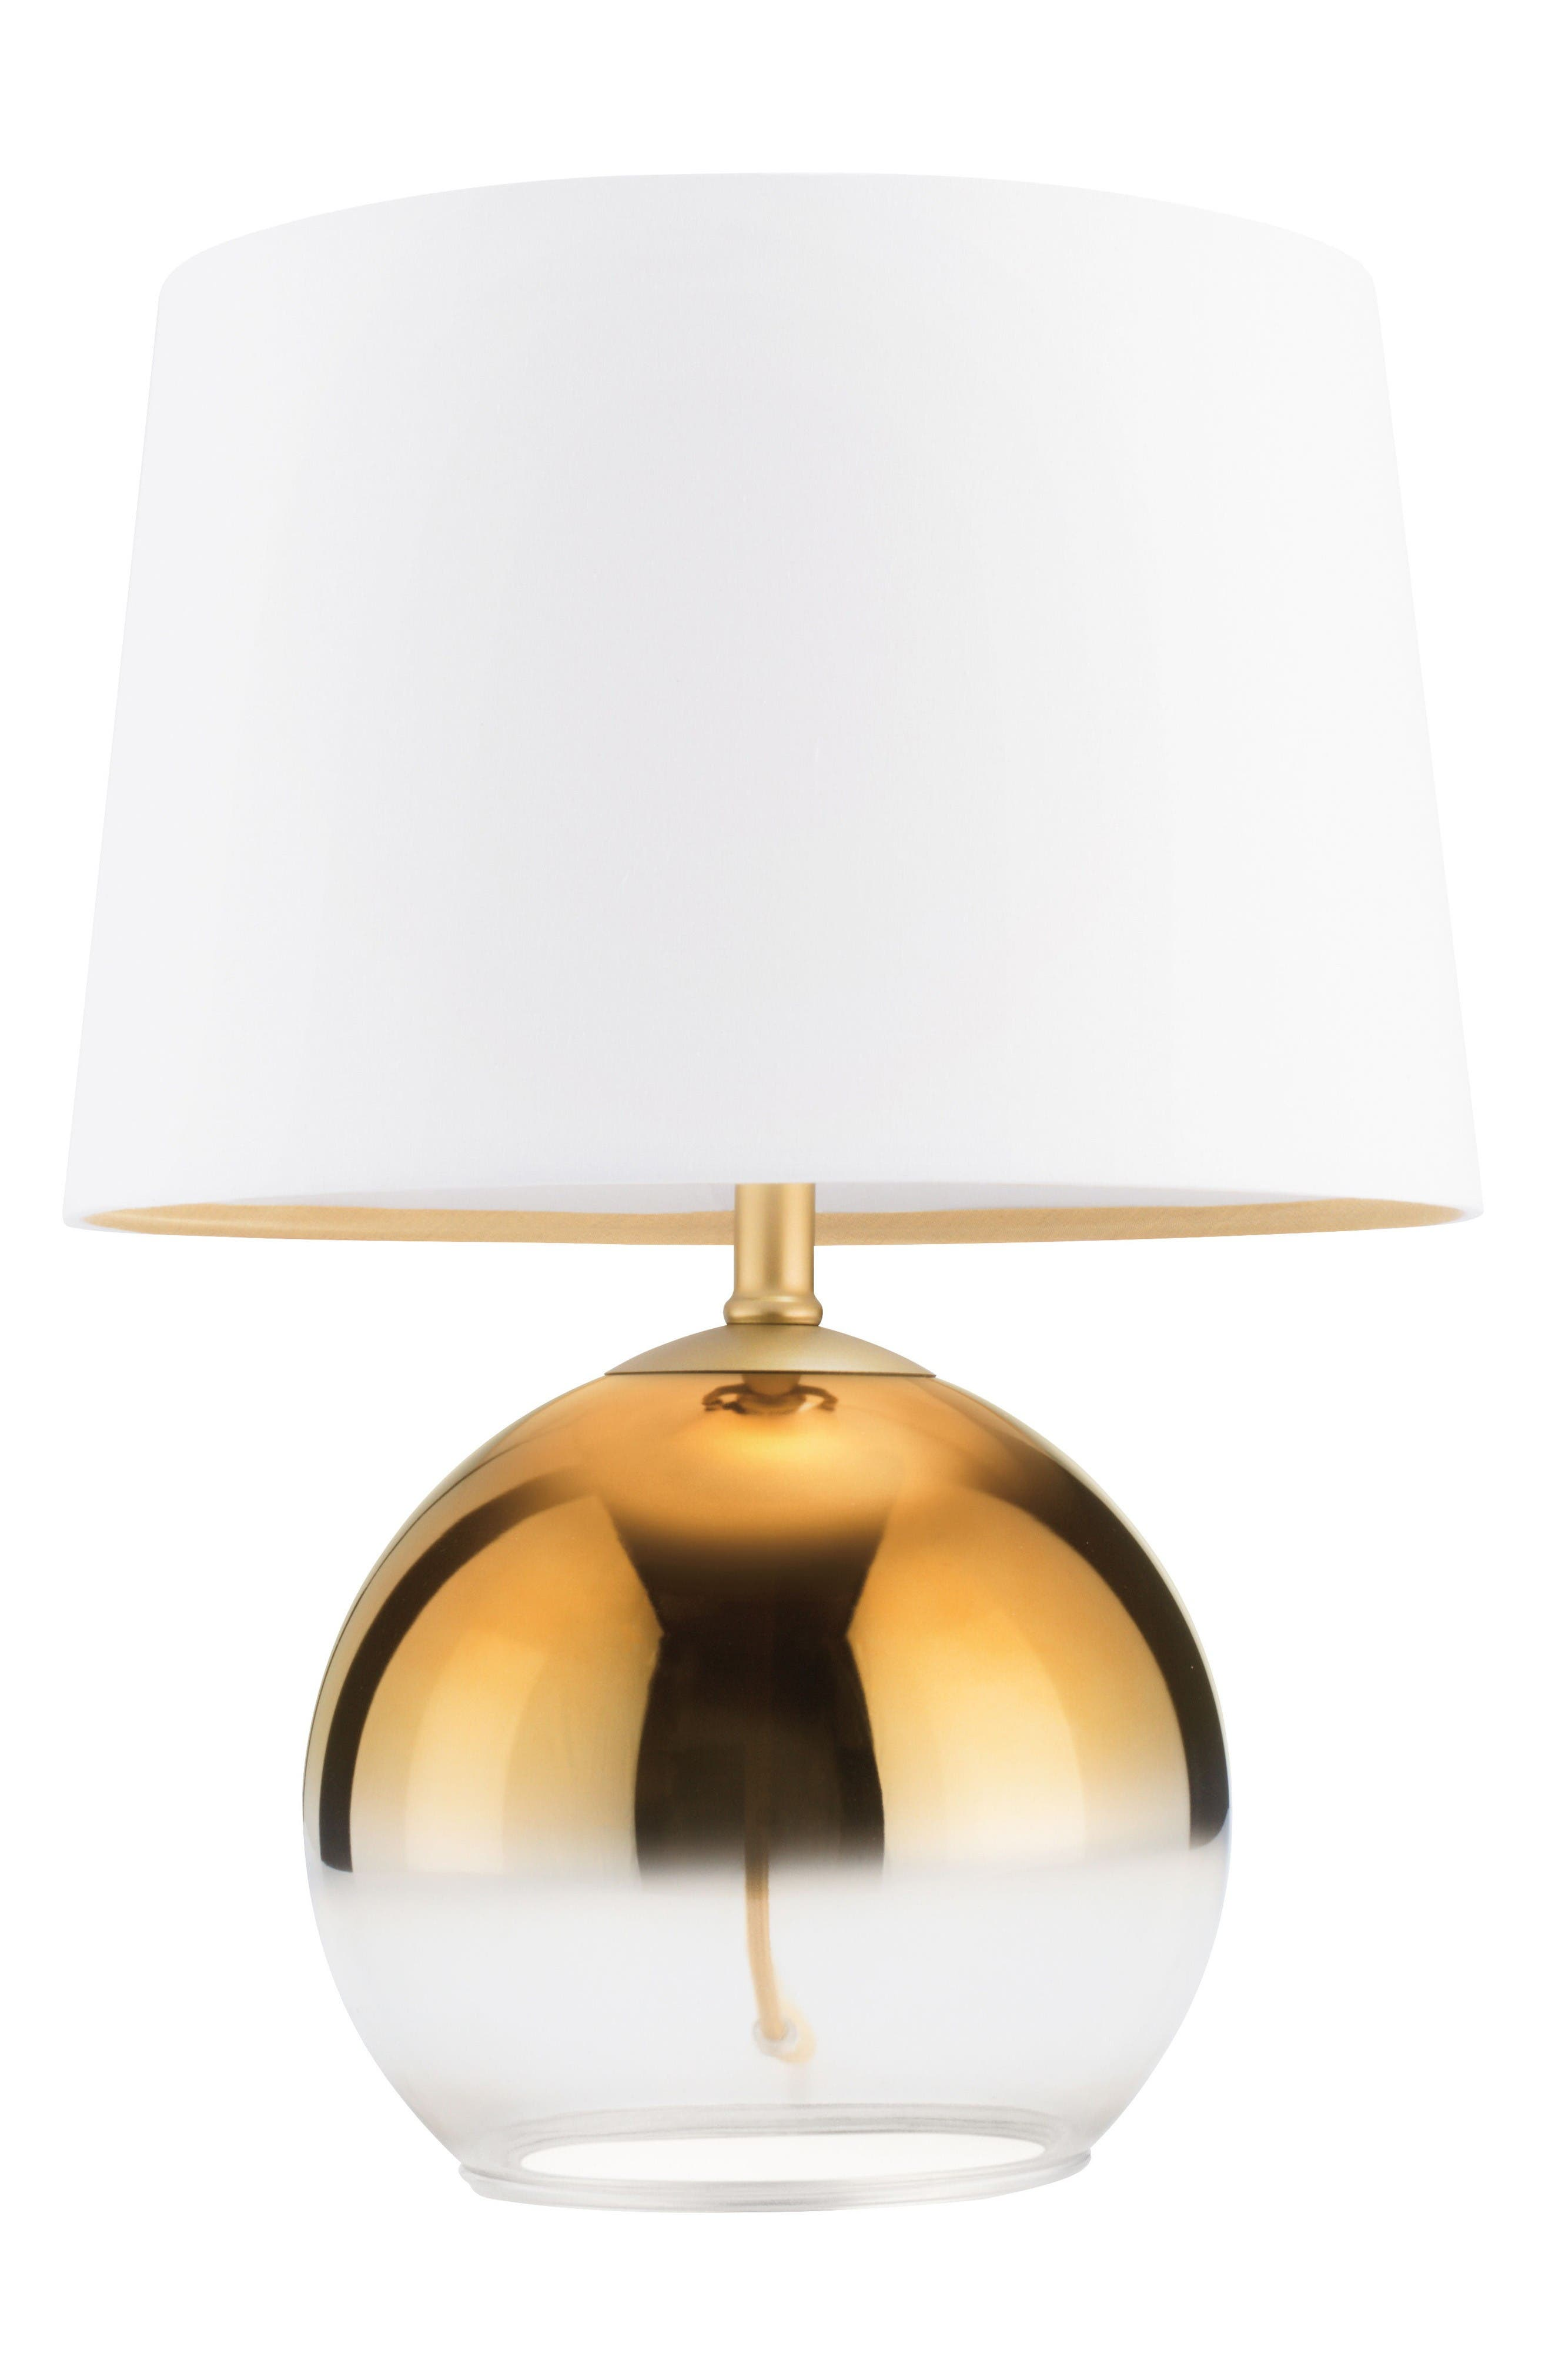 Glass Golden Ombré Table Lamp,                         Main,                         color, Metallic Gold